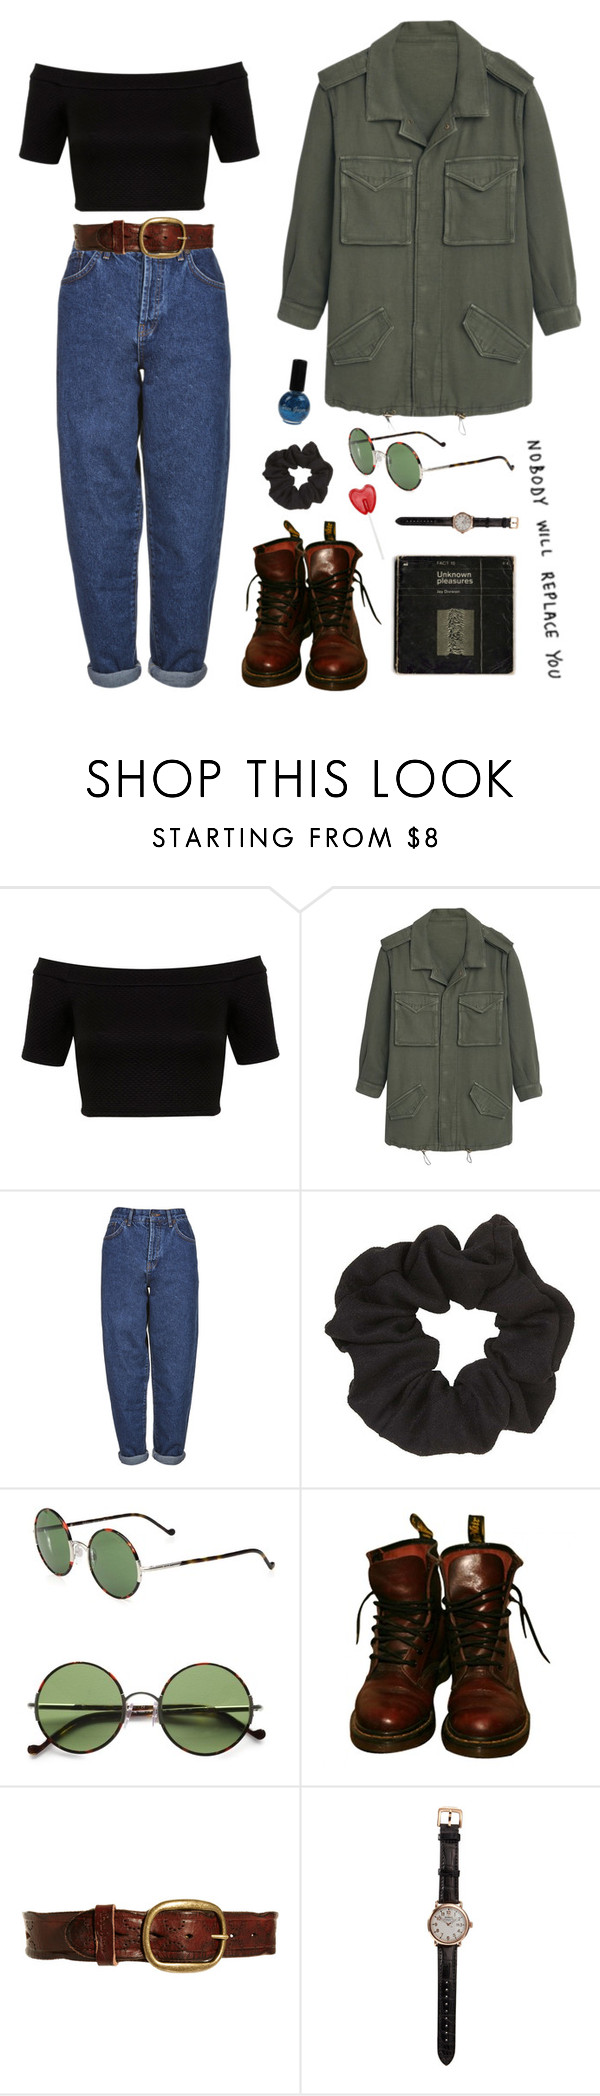 """""""Untitled #53"""" by marie-w-holm ❤ liked on Polyvore featuring Miss Selfridge, MANGO, Boutique, Topshop, Ralph Lauren, Dr. Martens, Pepe Jeans London and Shinola"""